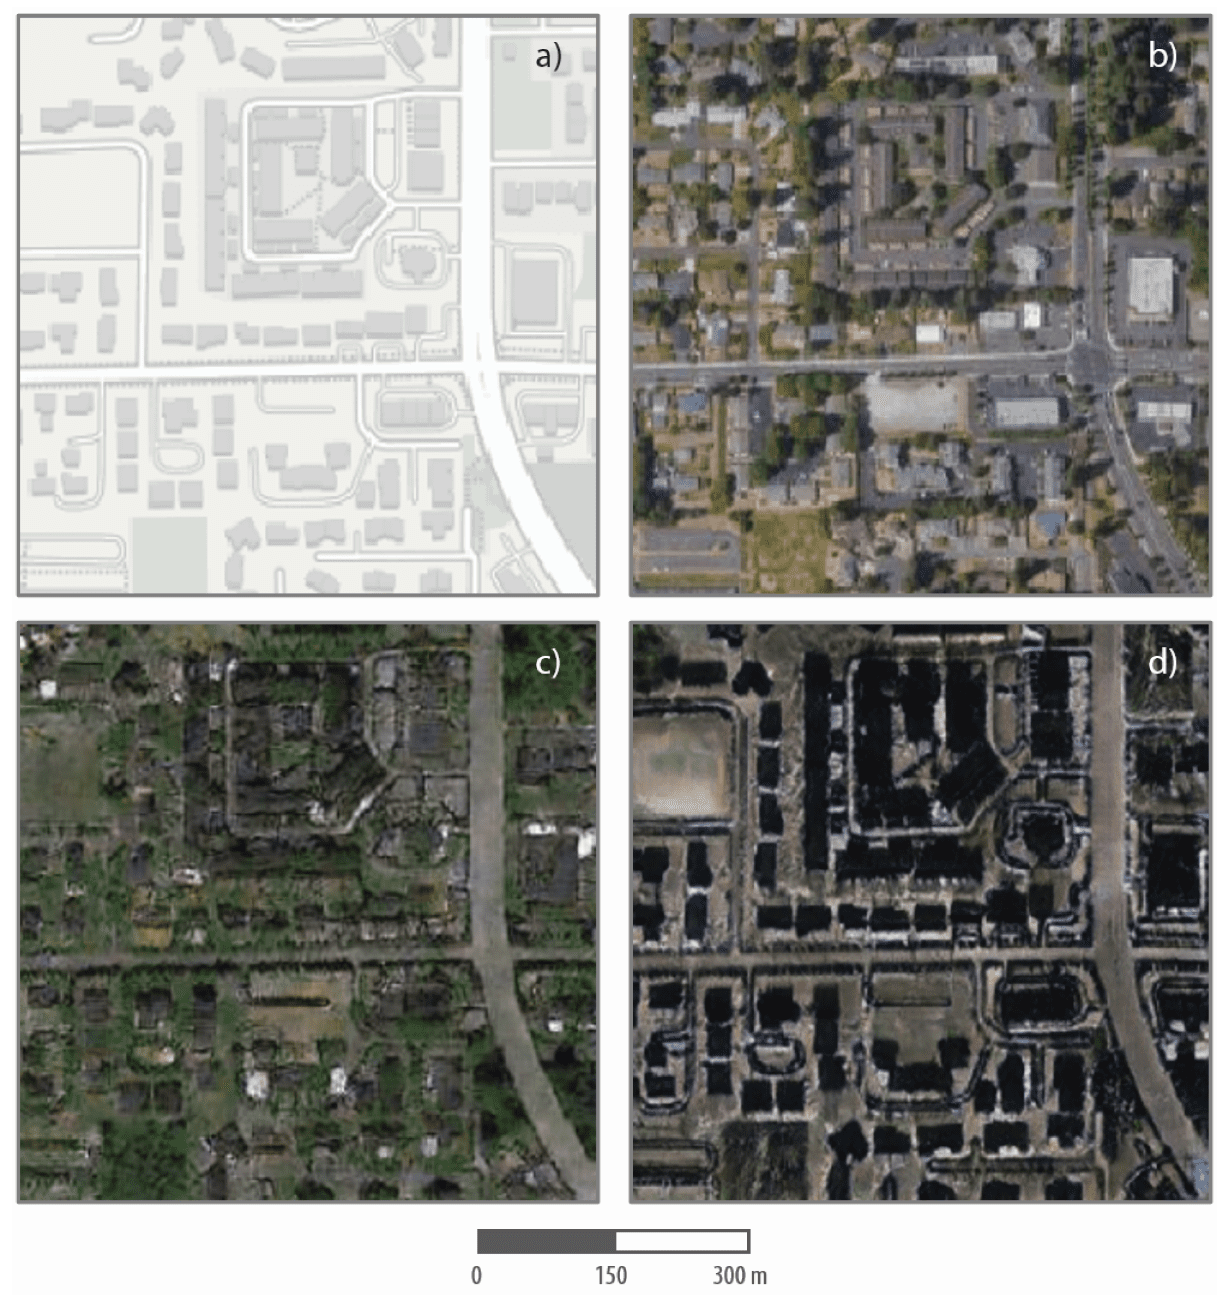 These are maps and satellite images, real and fake, of one Tacoma neighborhood. The top left shows an image from mapping software, and the top right is an actual satellite image of the neighborhood. The bottom two panels are simulated satellite images of the neighborhood, generated from geospatial data of Seattle (lower left) and Beijing (lower right).Zhao et al., 2021, Cartography and Geographic Information Science